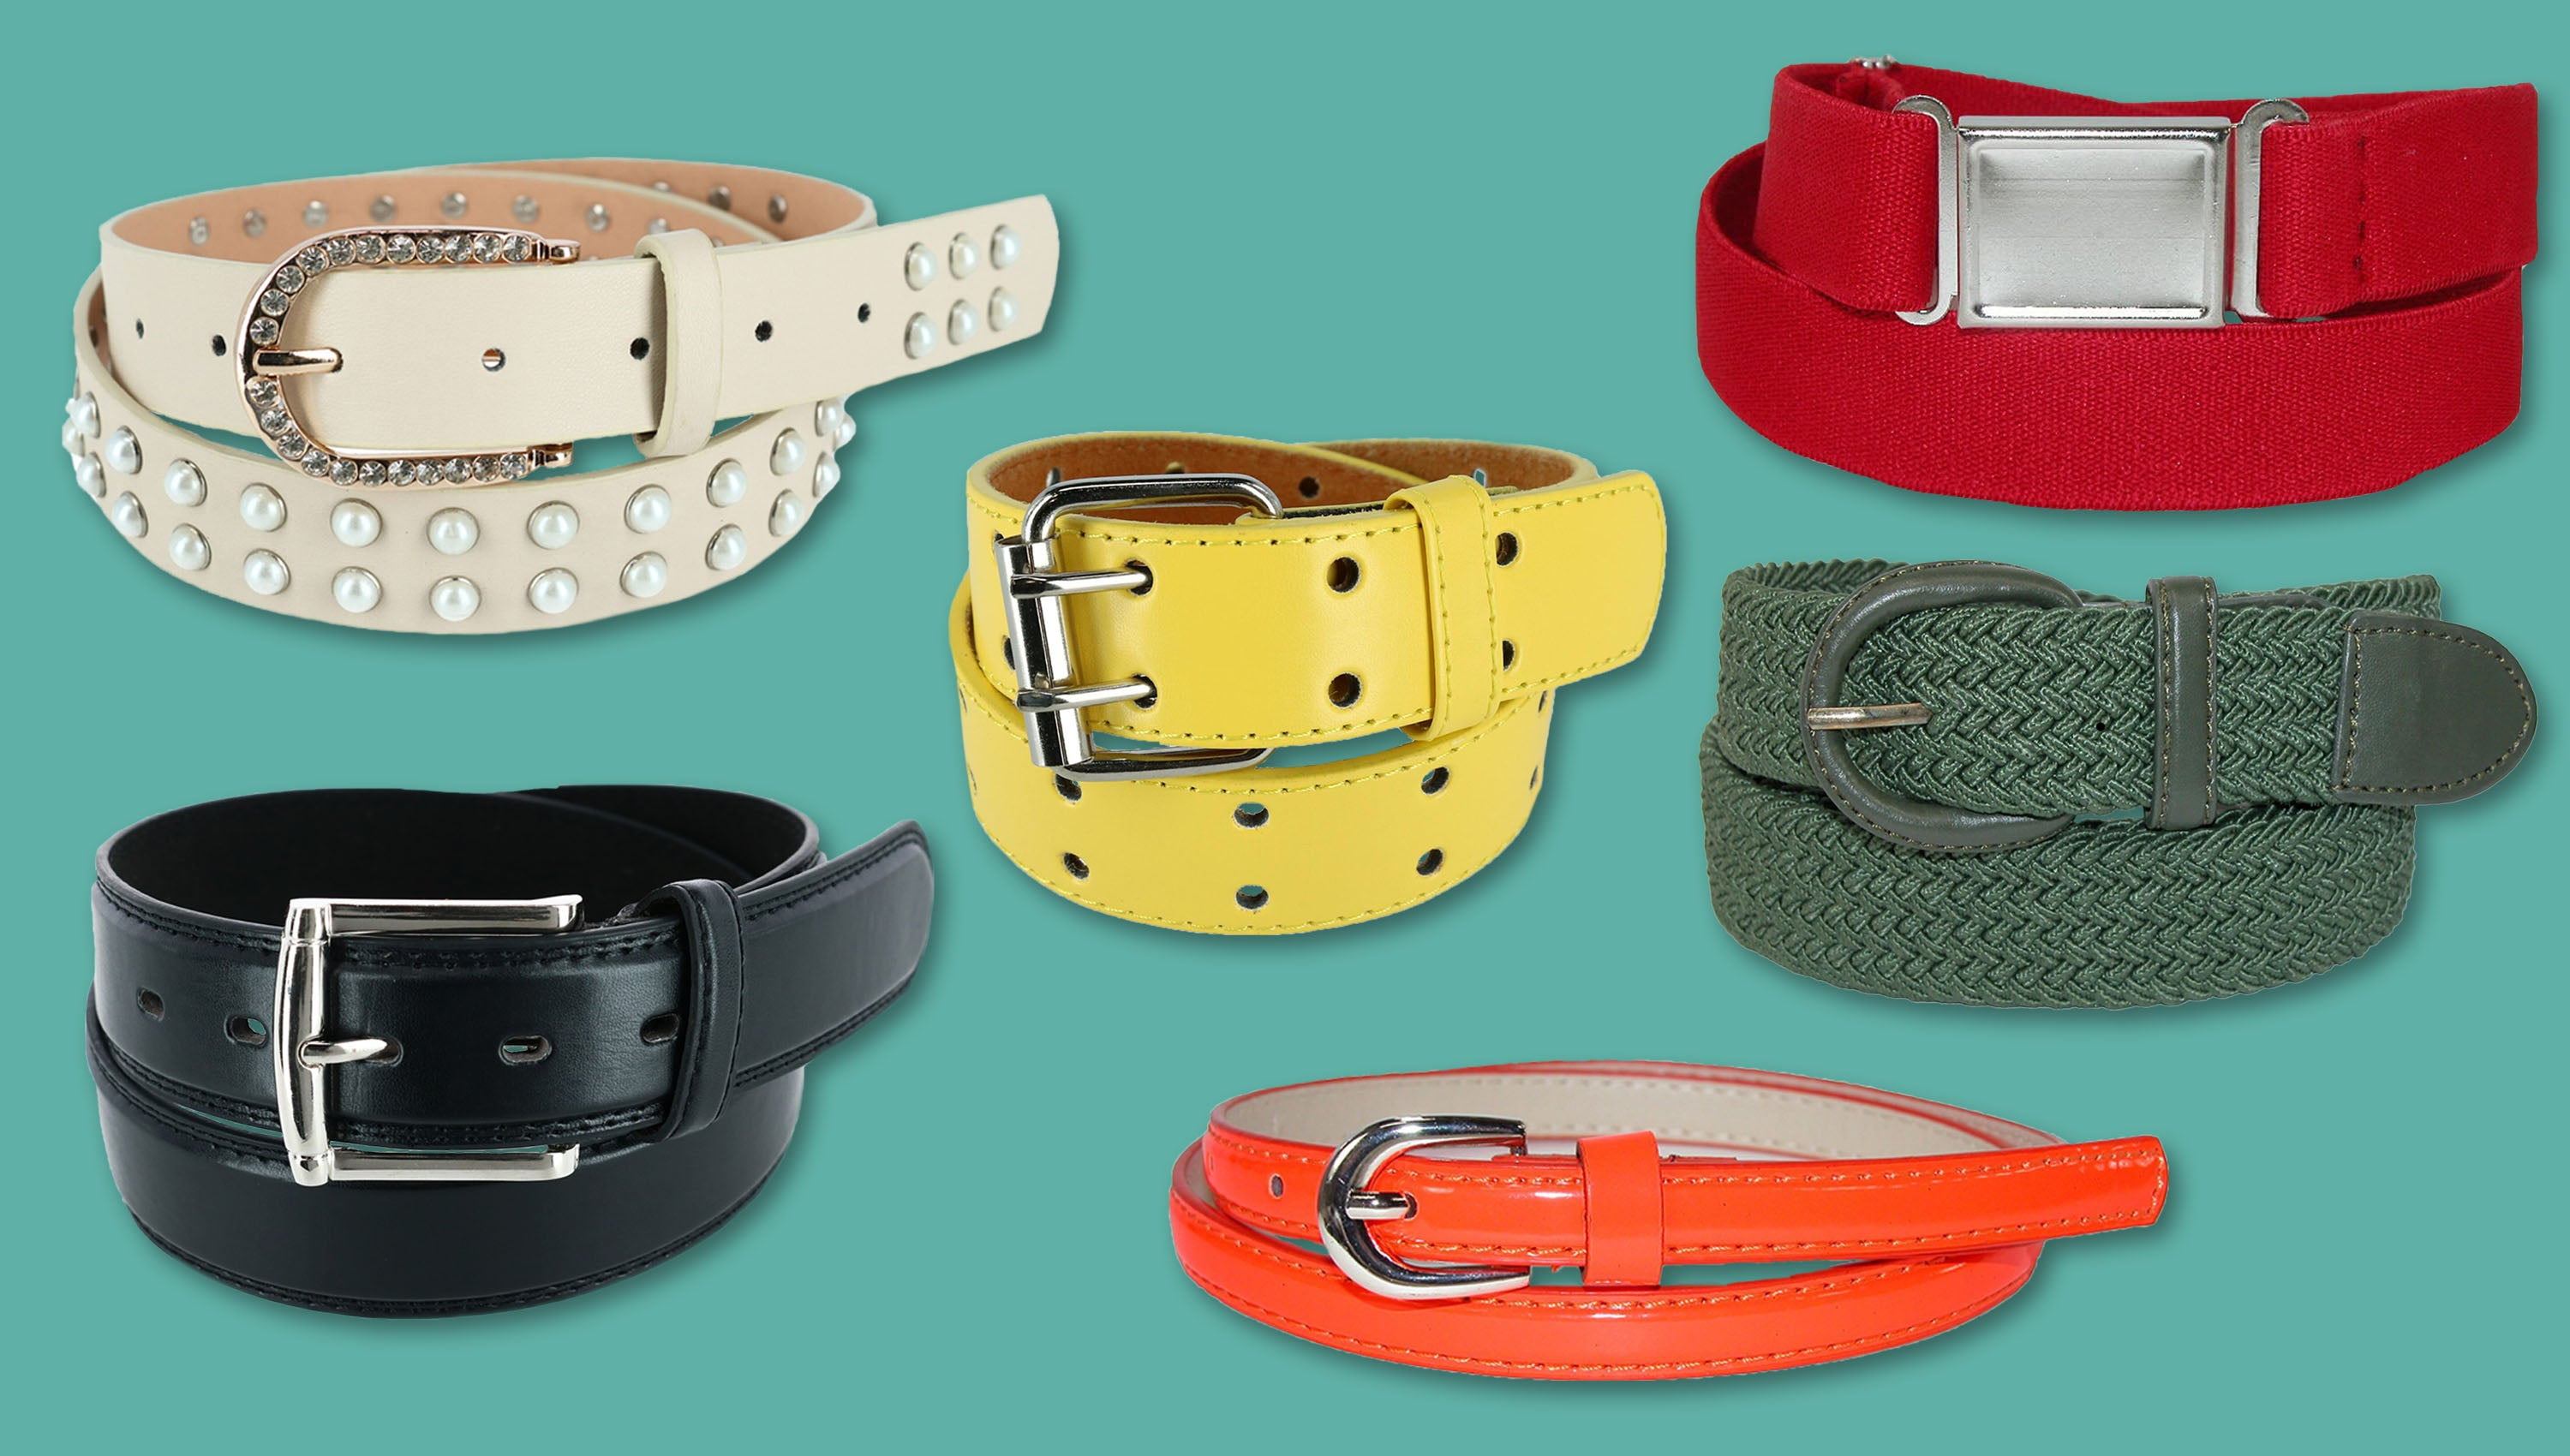 Shop CTM belts for the whole family at BeltOutlet.com